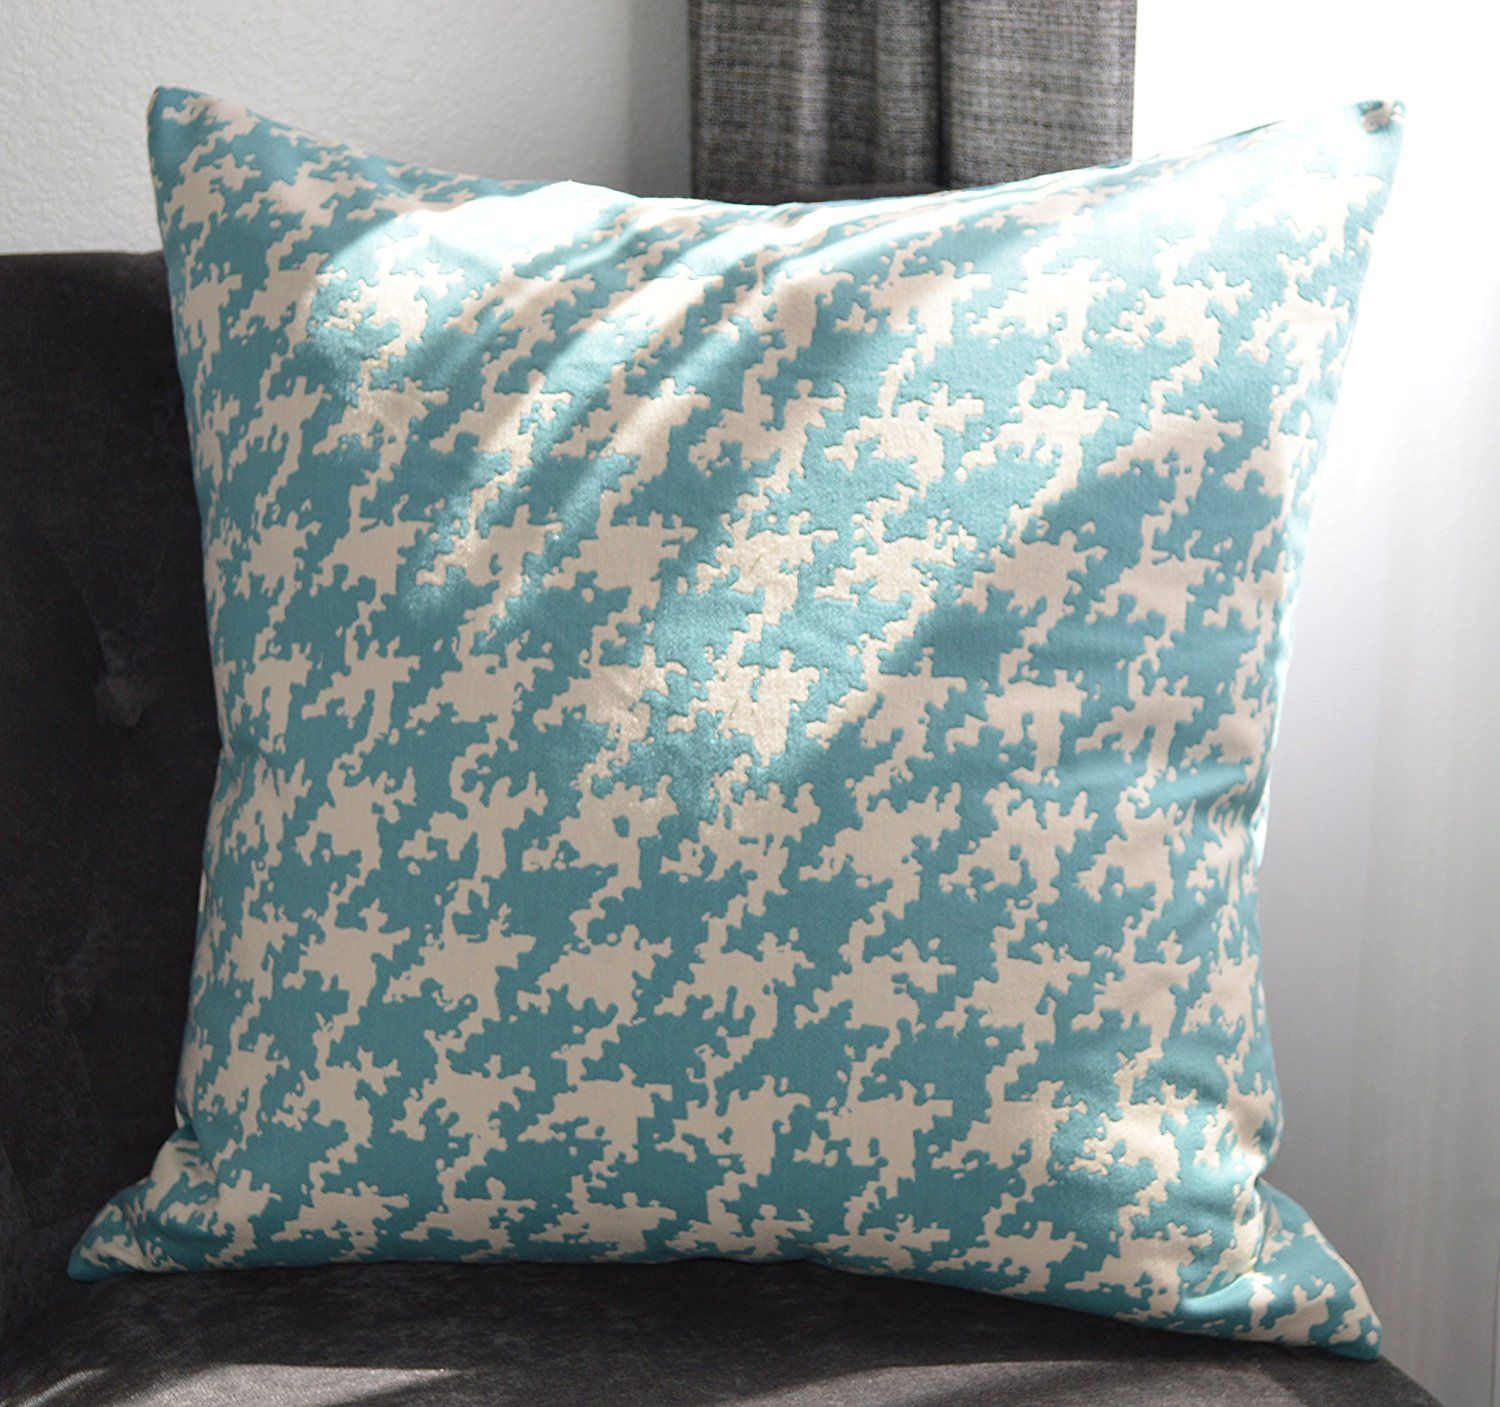 Creative Accent Decorative 17% Cotton Throw Pillow Cover, 17x17 ...